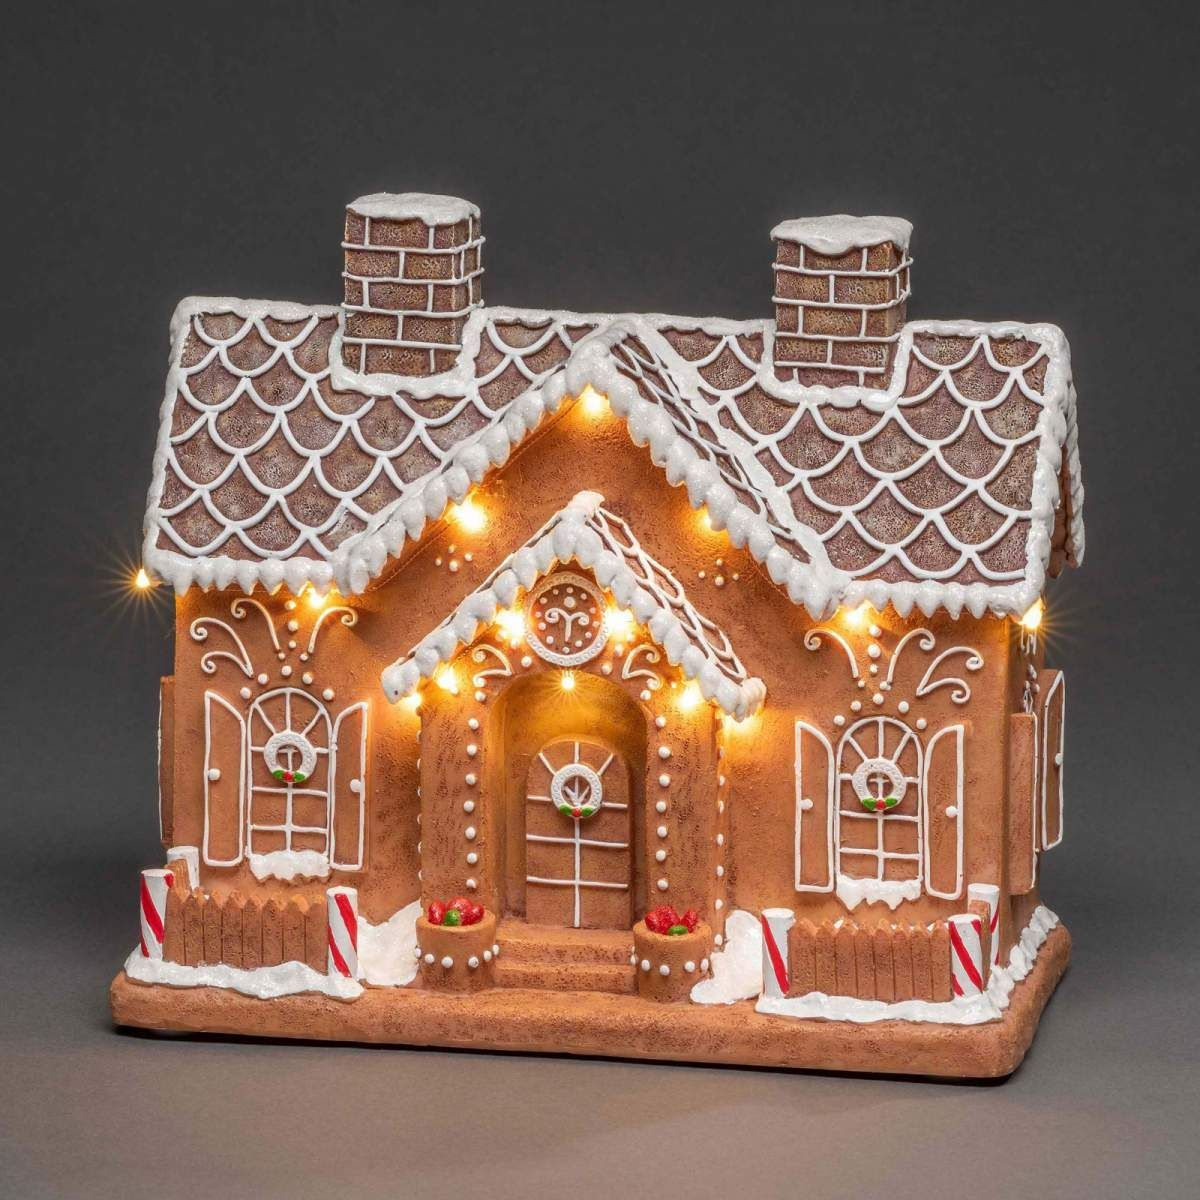 Lamp Christmas Gingerbread House By Konstmide Christmas Brewing Lampe Weihnachten Lebkuchenhaus Von Konstmide Christmas Braun Le In 2020 Gingerbread House Designs Christmas Gingerbread House Gingerbread House Parties